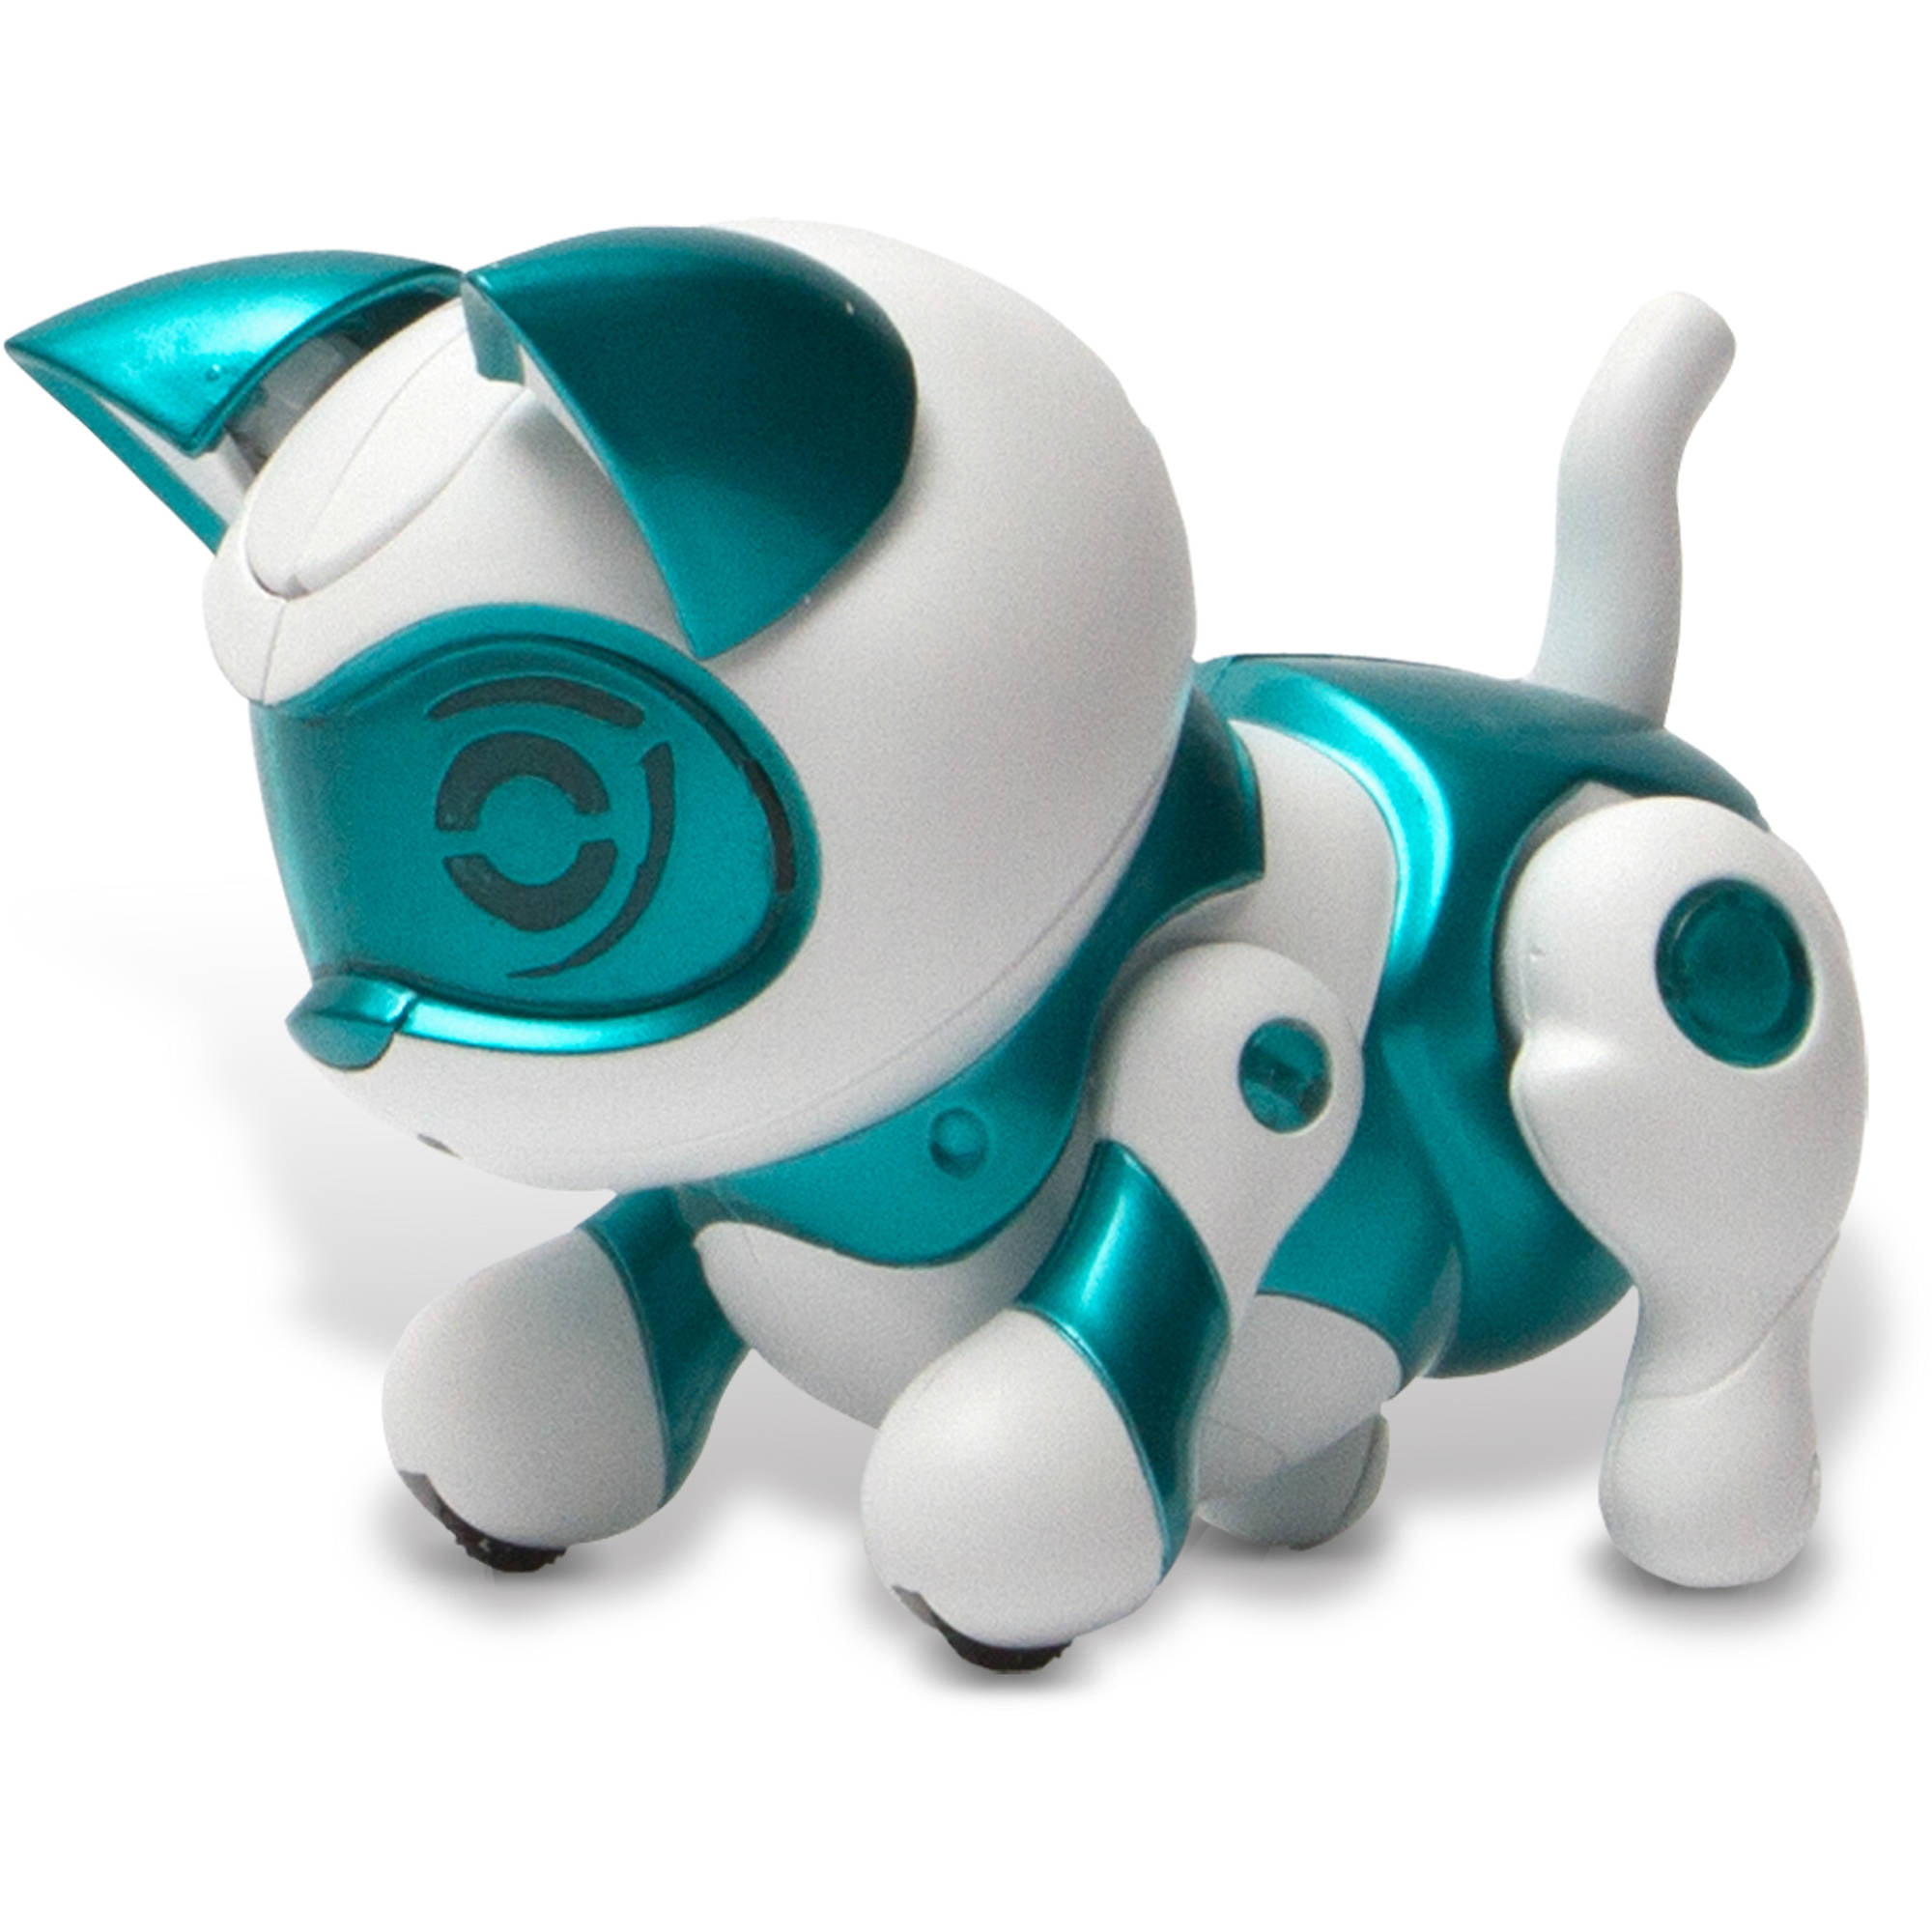 Tekno Robotic Pets Newborn Kitty Teal Walmart Com